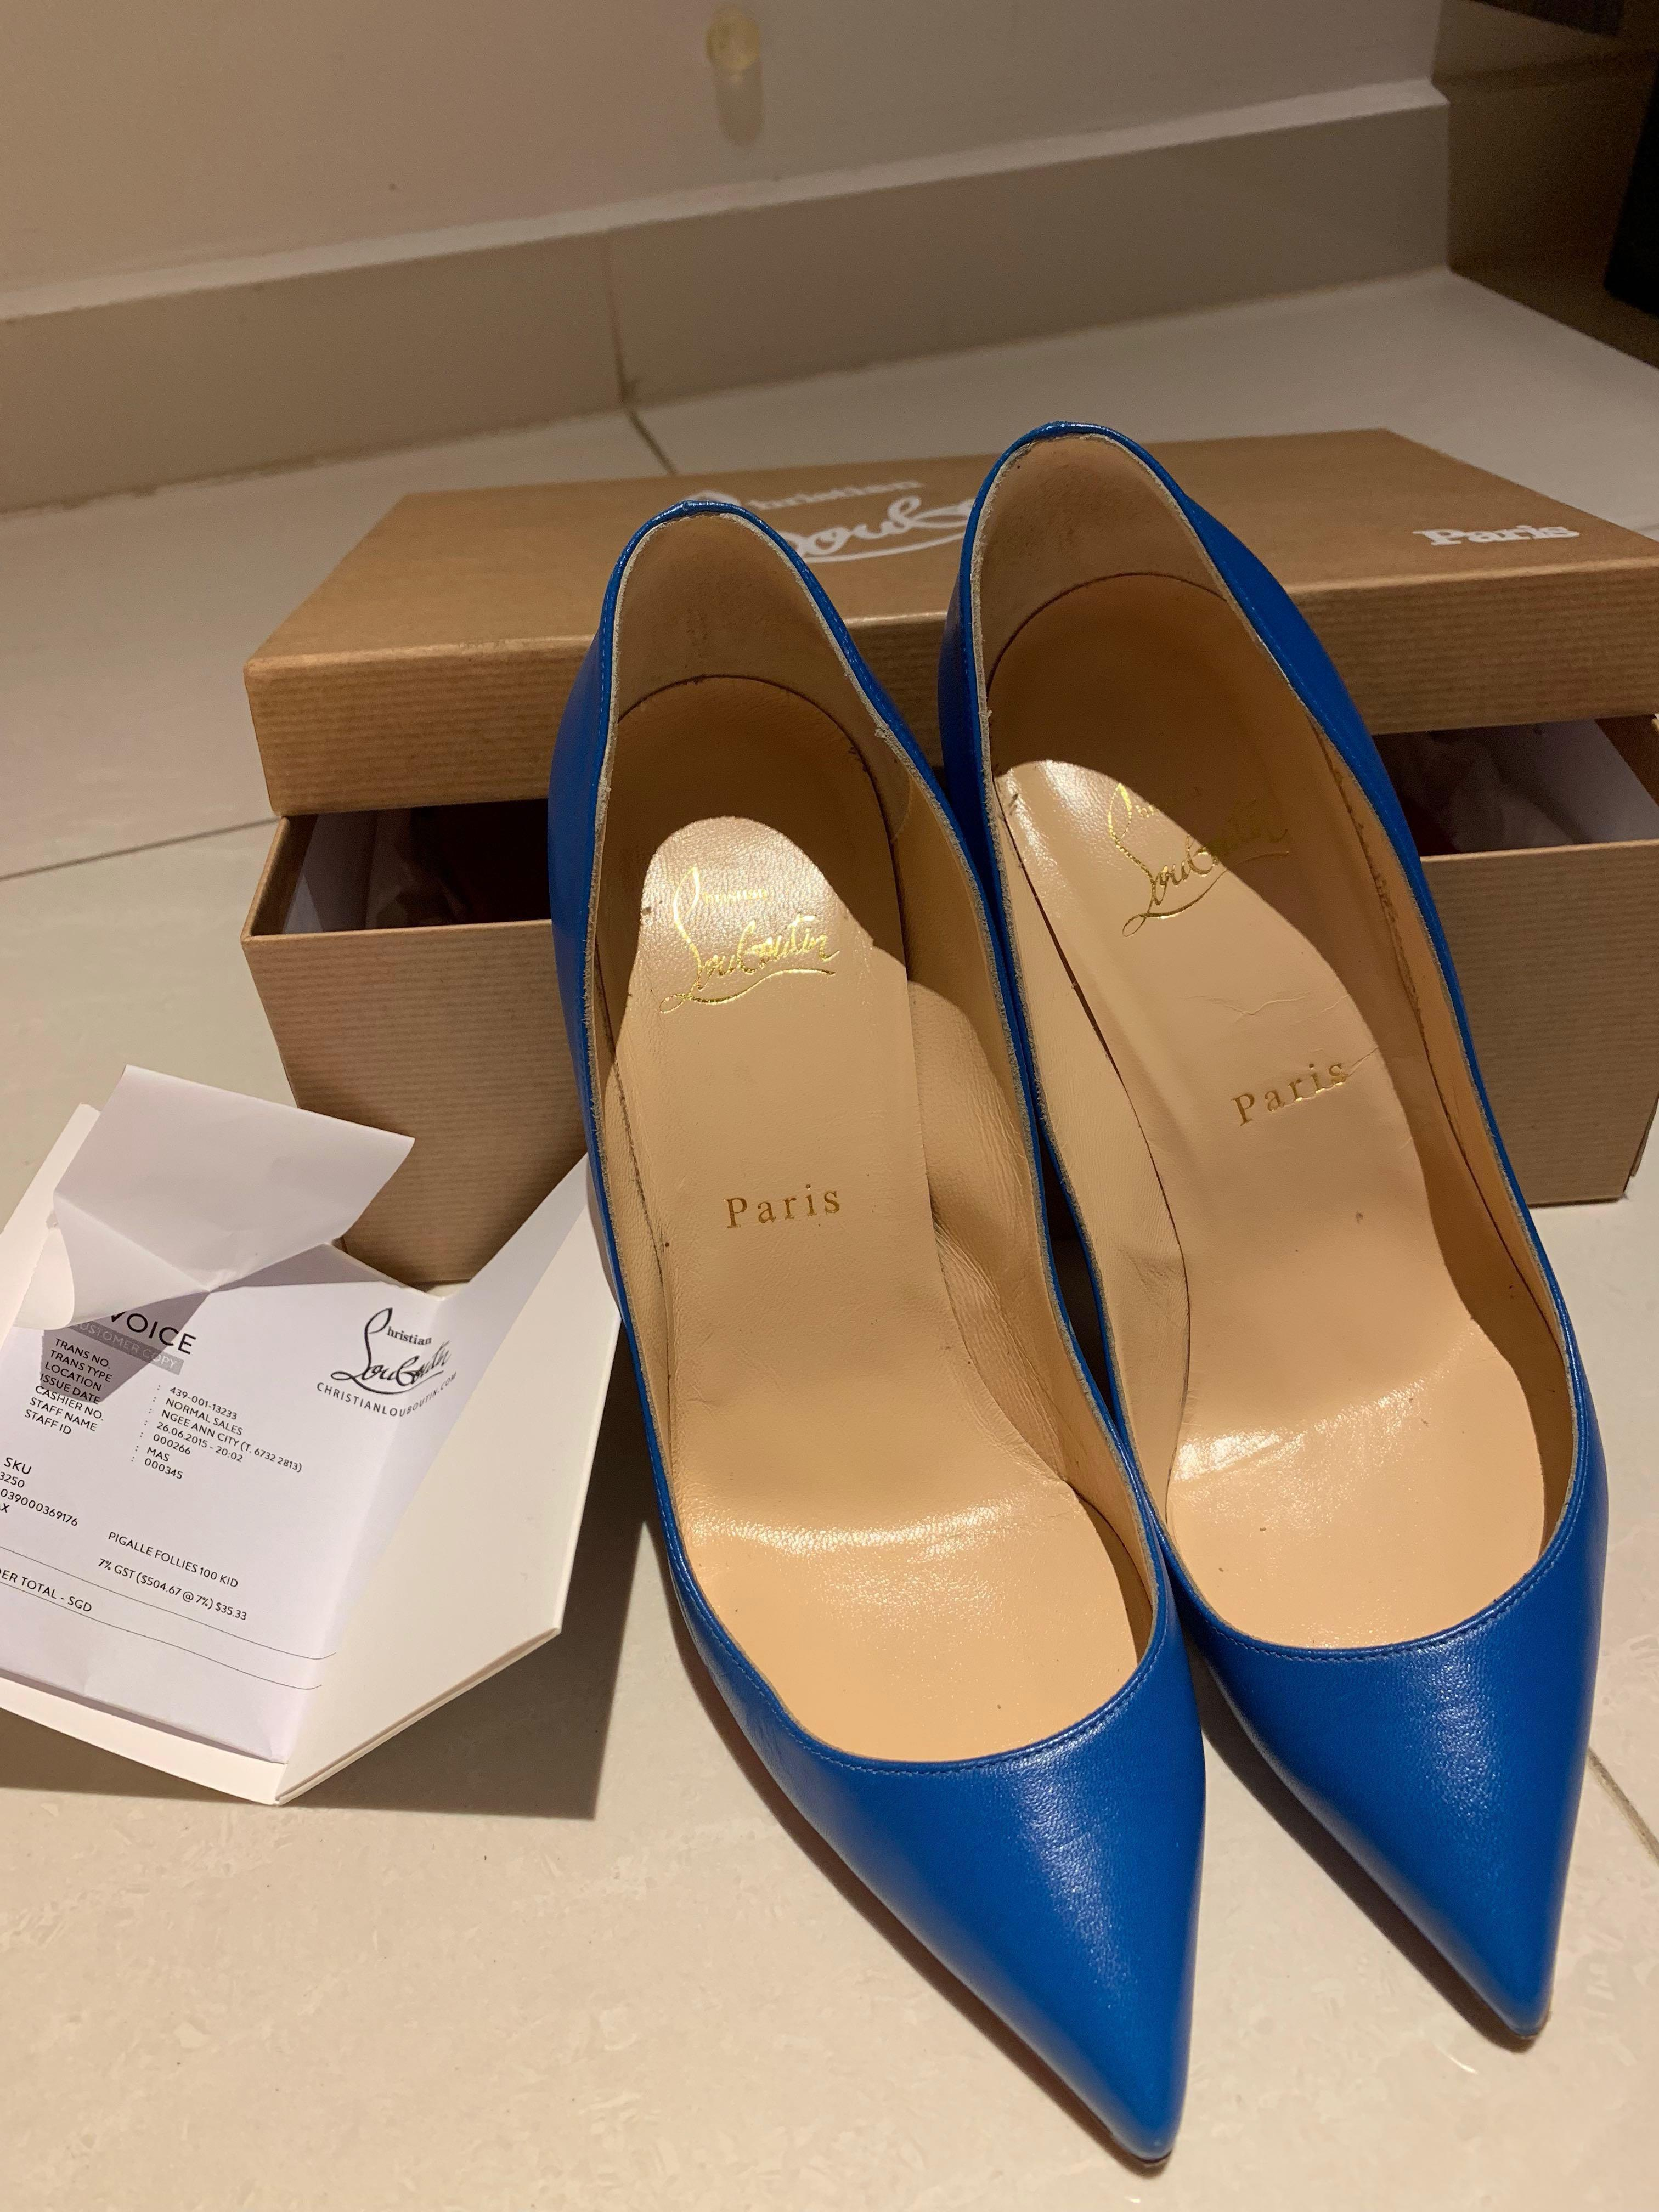 pas mal e3c10 64126 Christian Louboutin Blue Pigalle heels size 38.5, Luxury ...